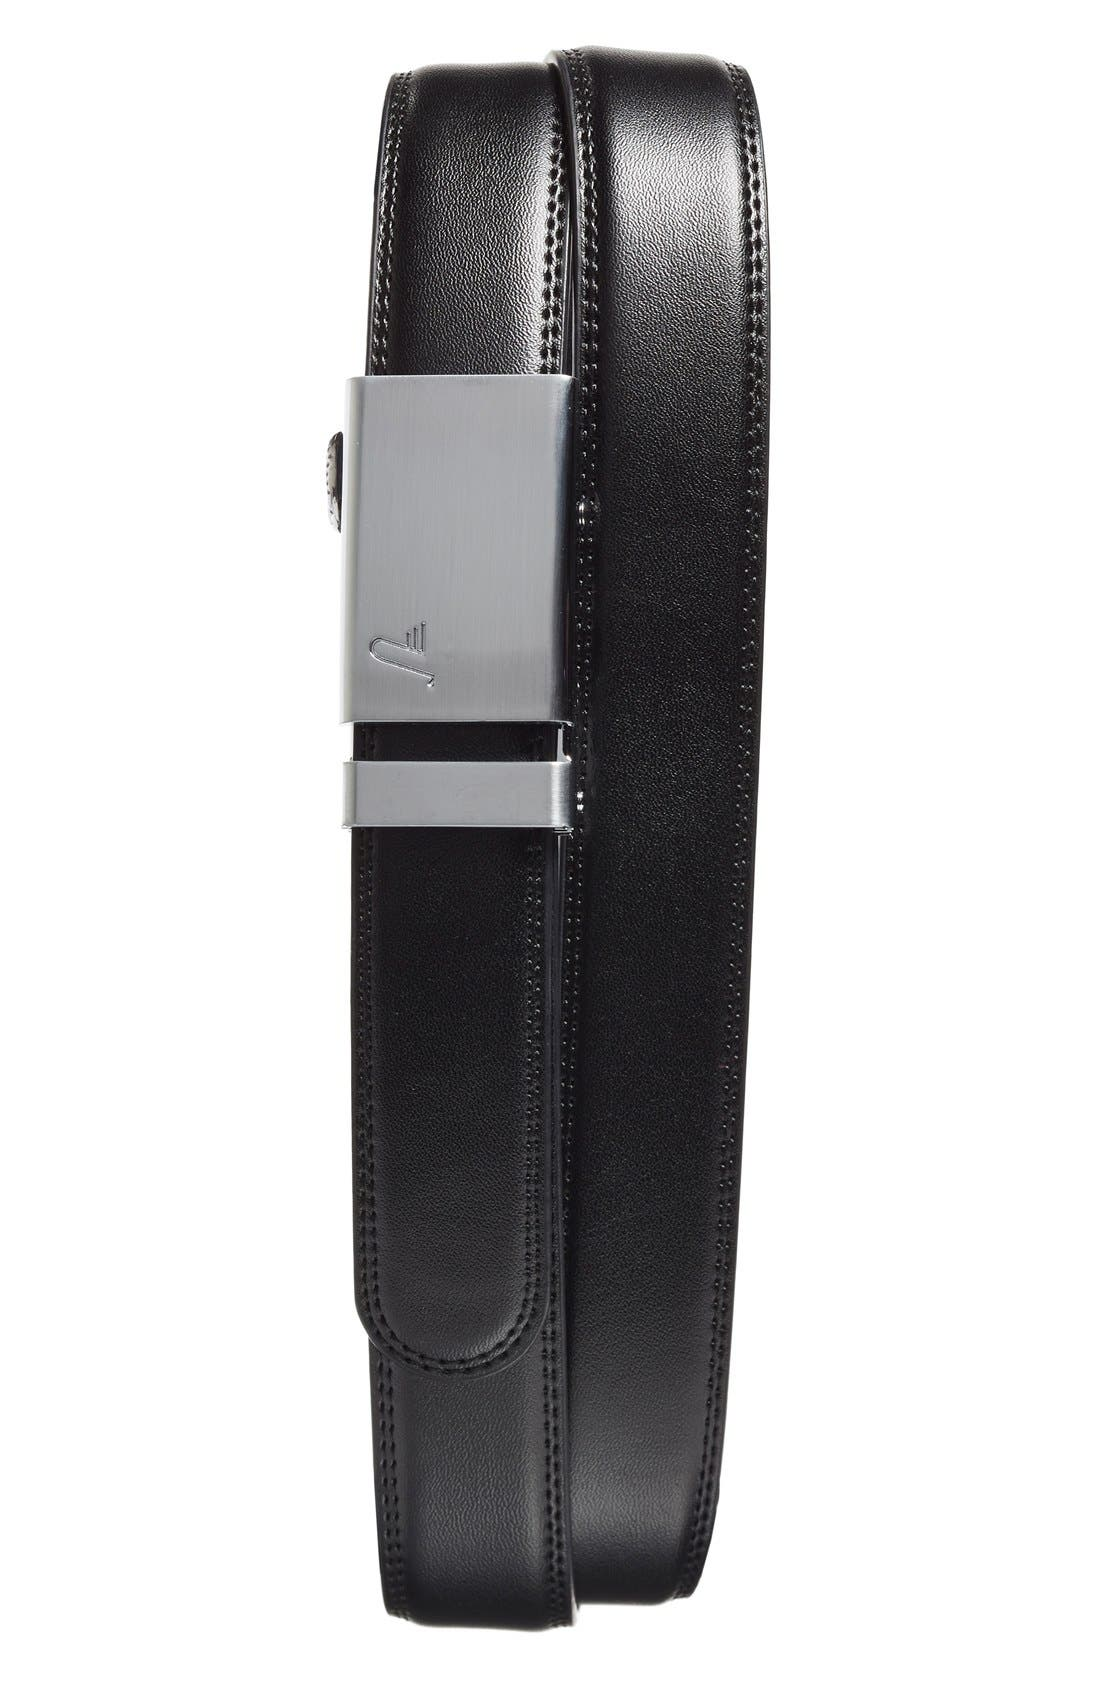 Mission Belt 'Alloy' Leather Belt